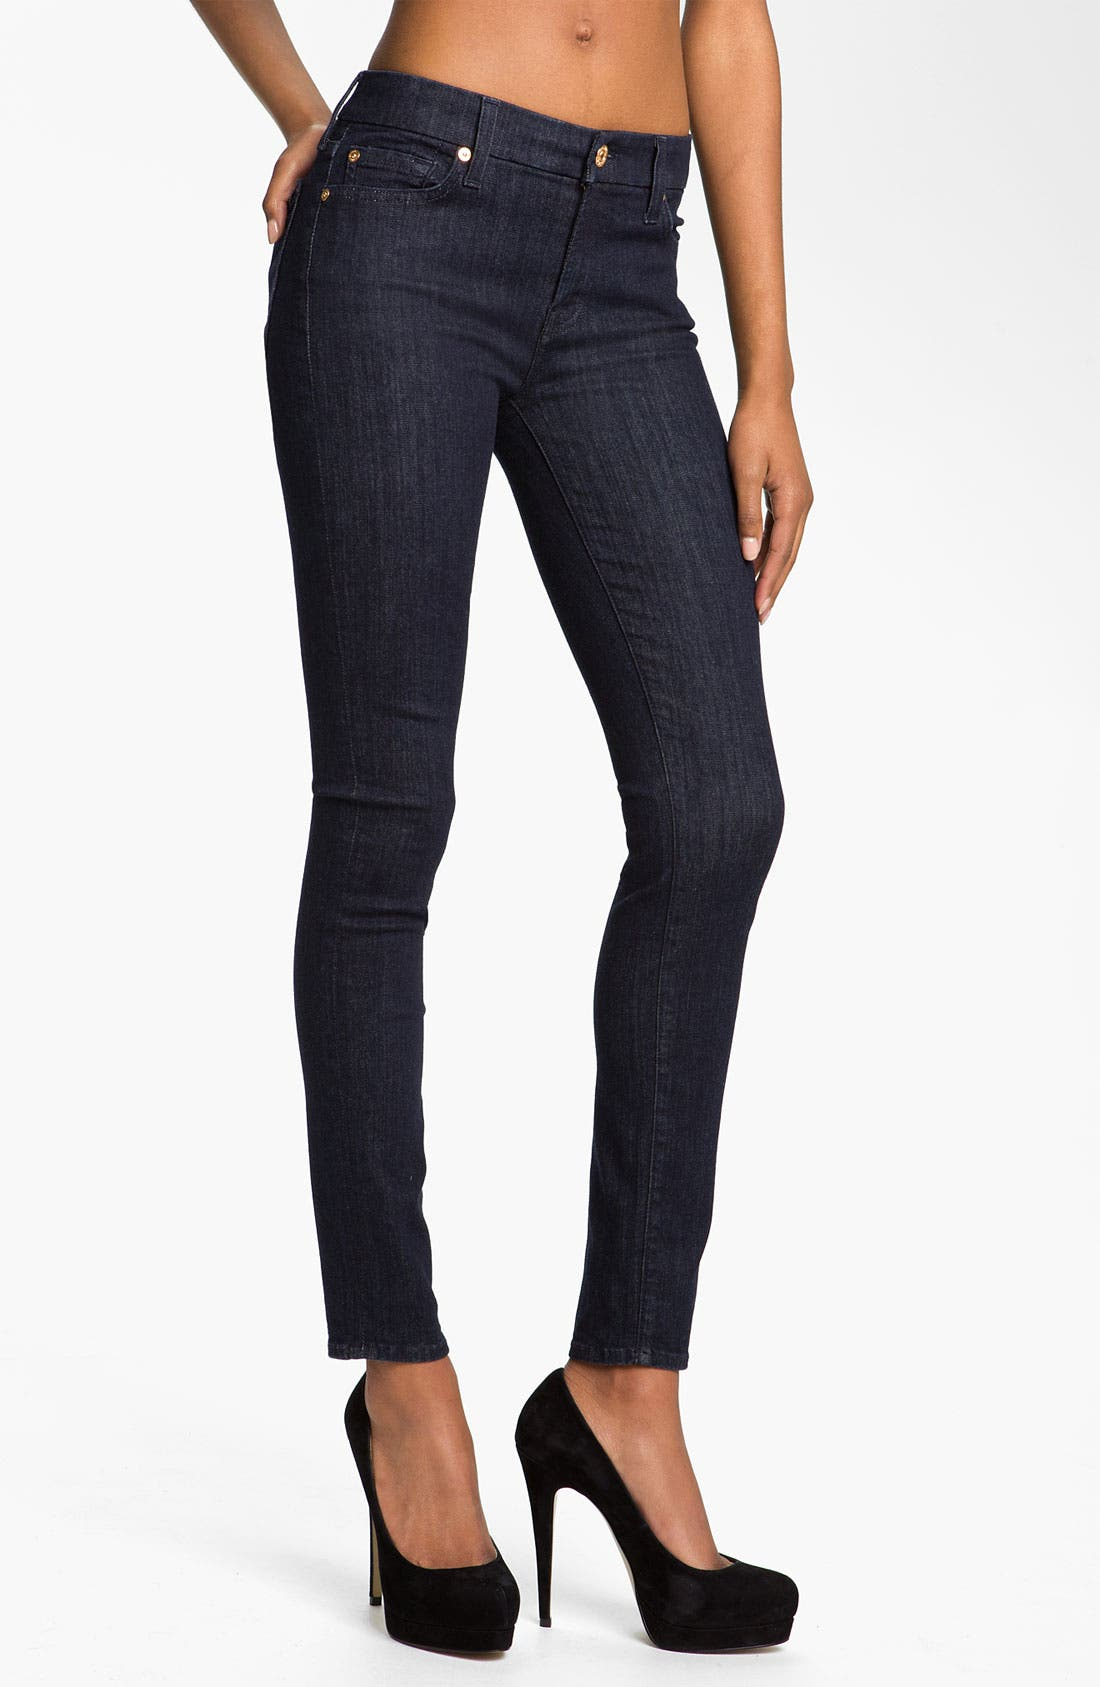 Alternate Image 1 Selected - 7 For All Mankind® 'Slim Illusion' Skinny Stretch Jeans (Rinse)